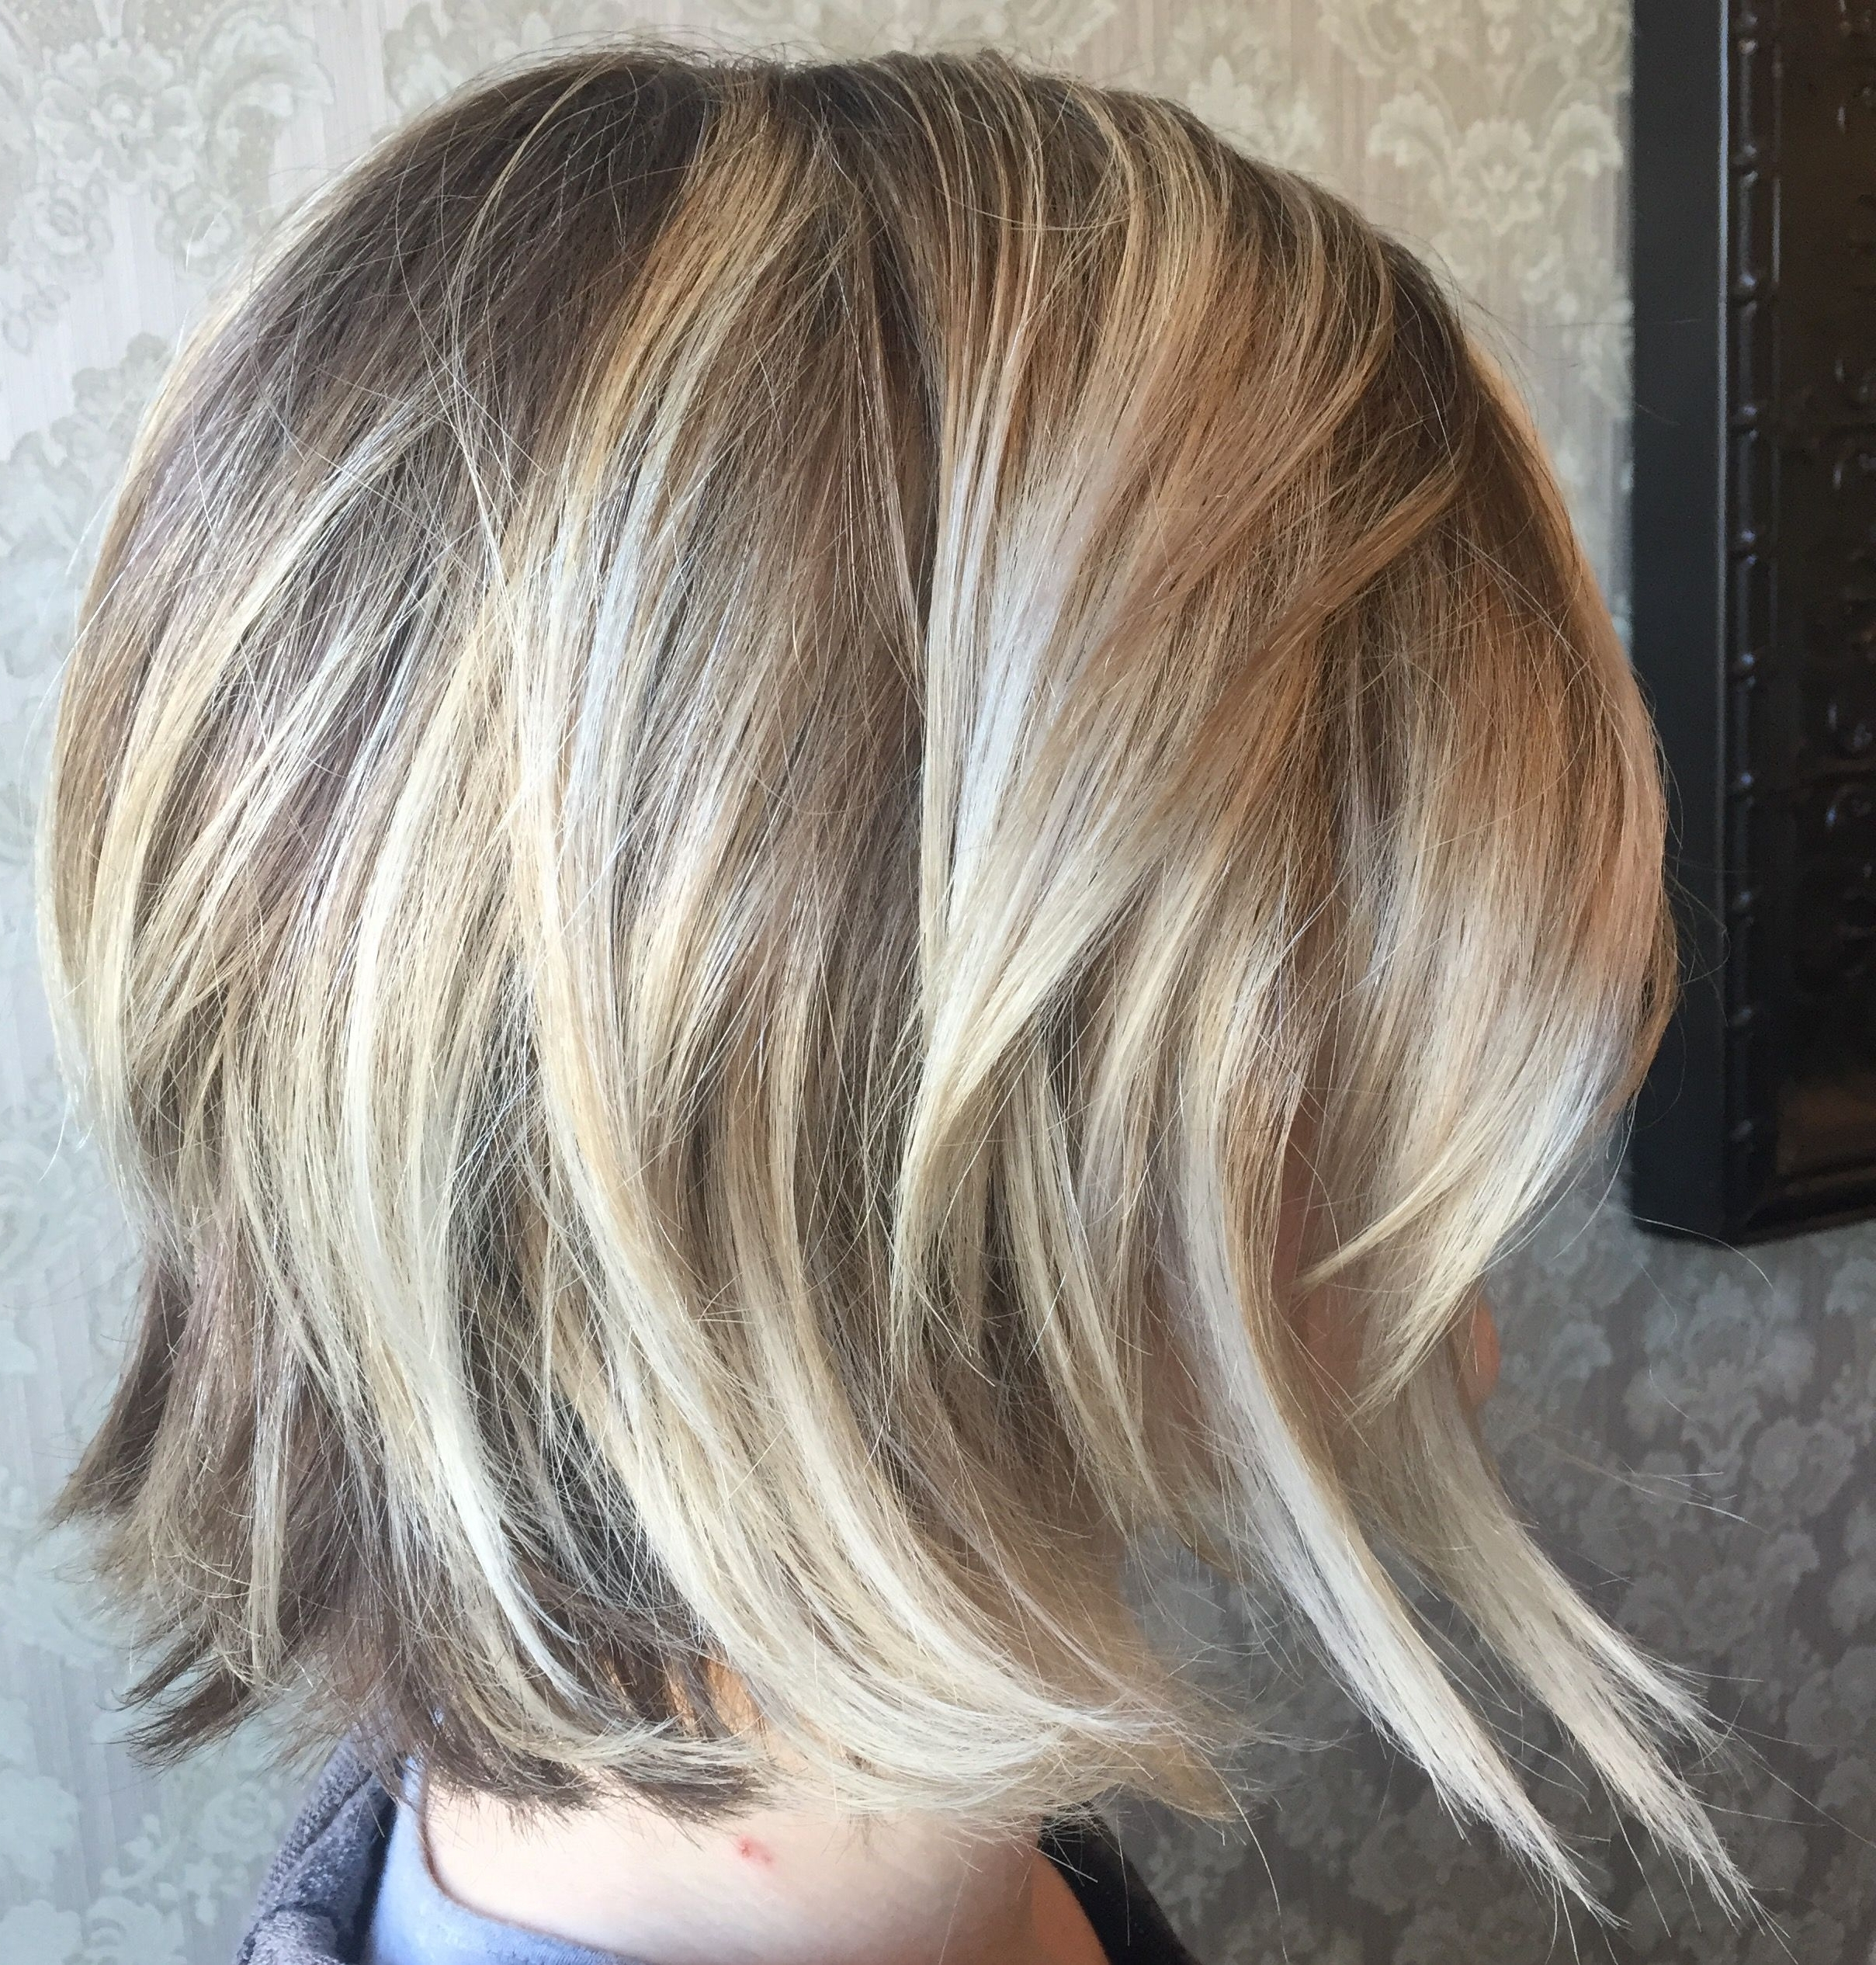 Blonde On Blonde Balayage Highlights, Angled Bob Haircut, Platinum Intended For Favorite Contrasting Highlights Blonde Hairstyles (View 8 of 20)